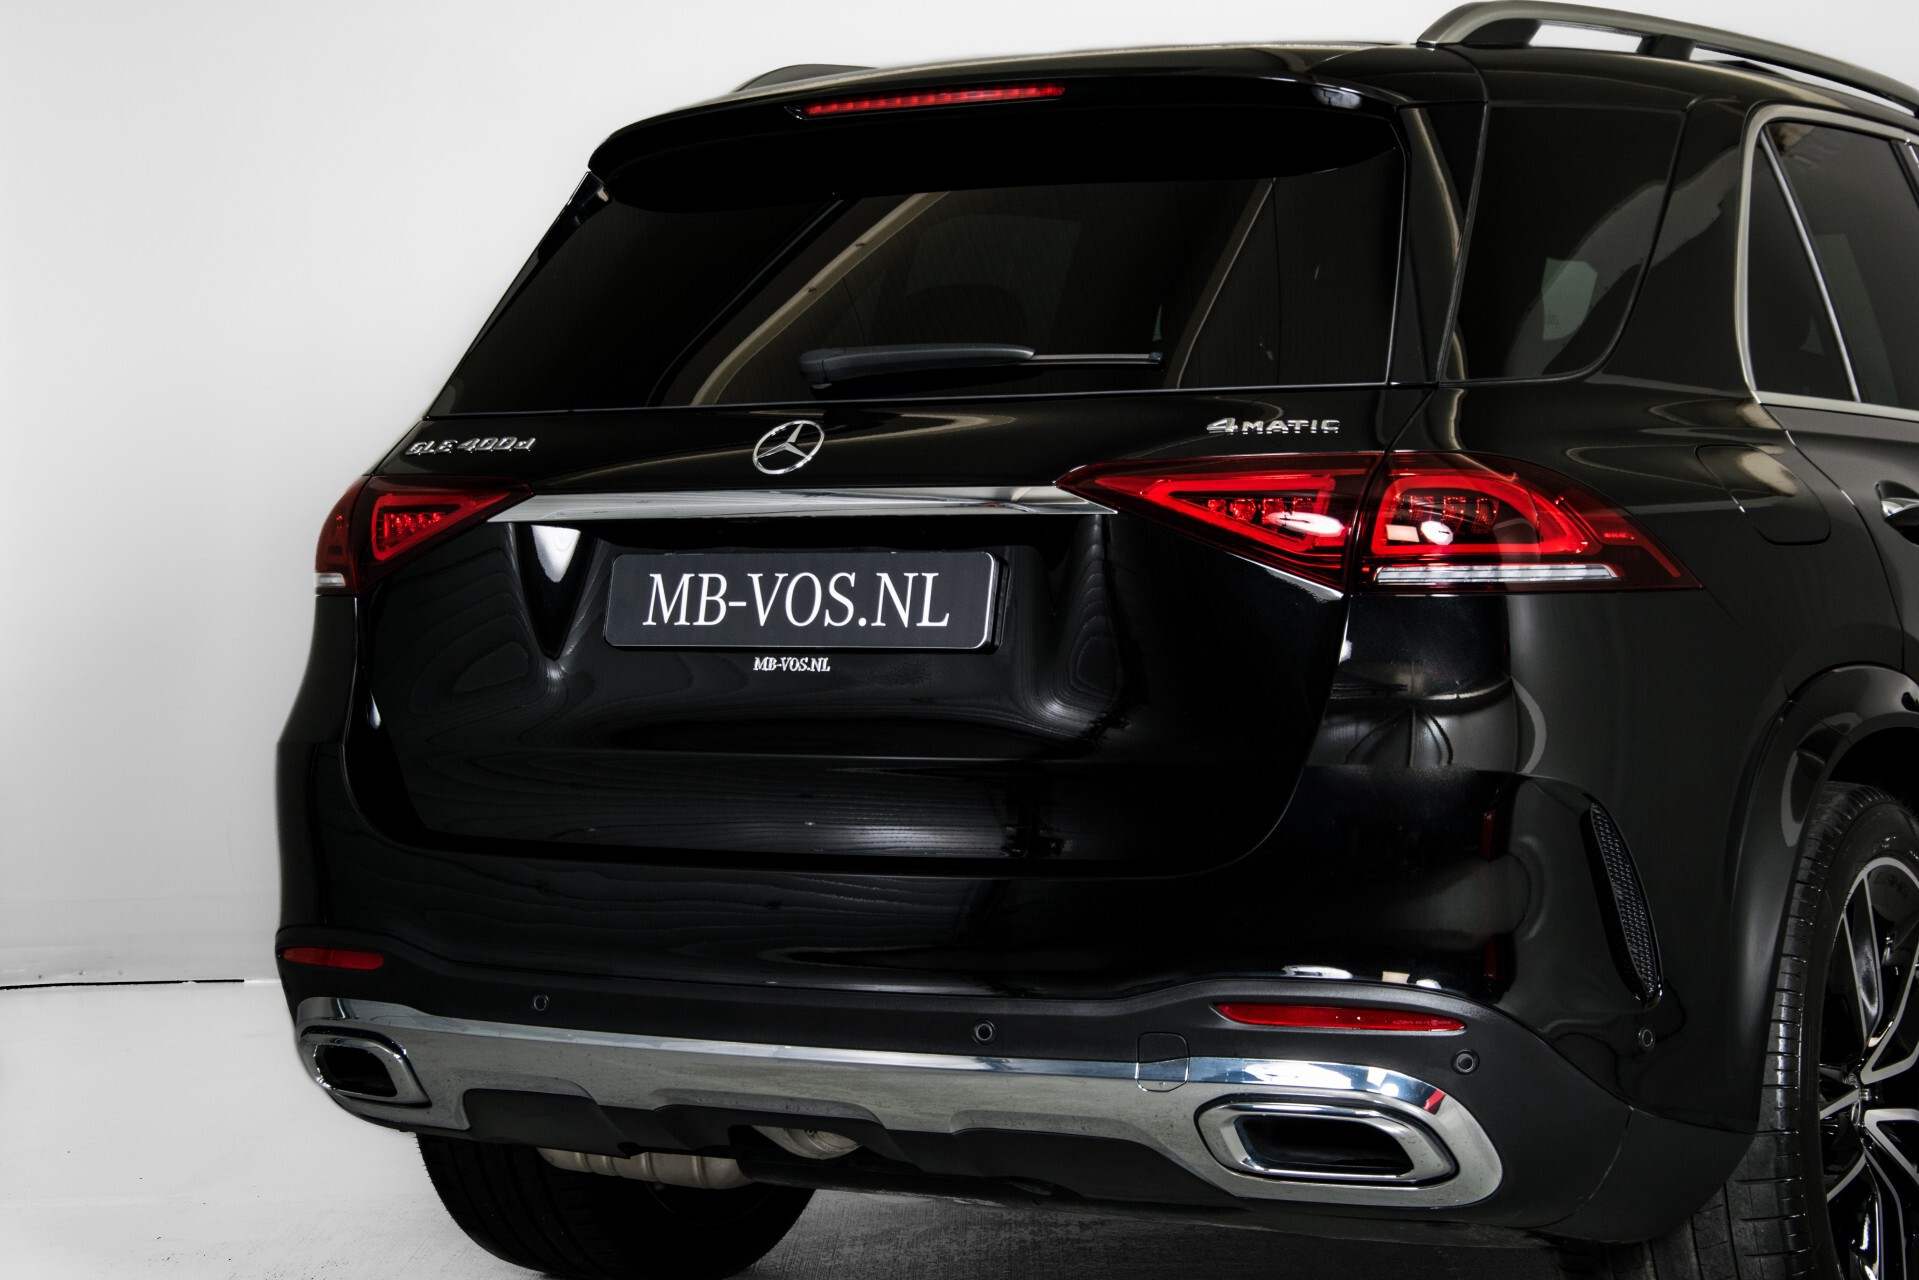 Mercedes-Benz GLE 400 d 4-M Luchtvering/Distronic/Keyless/HUD/Burmester/Nappa/360 camera/Panorama Aut9 Foto 67